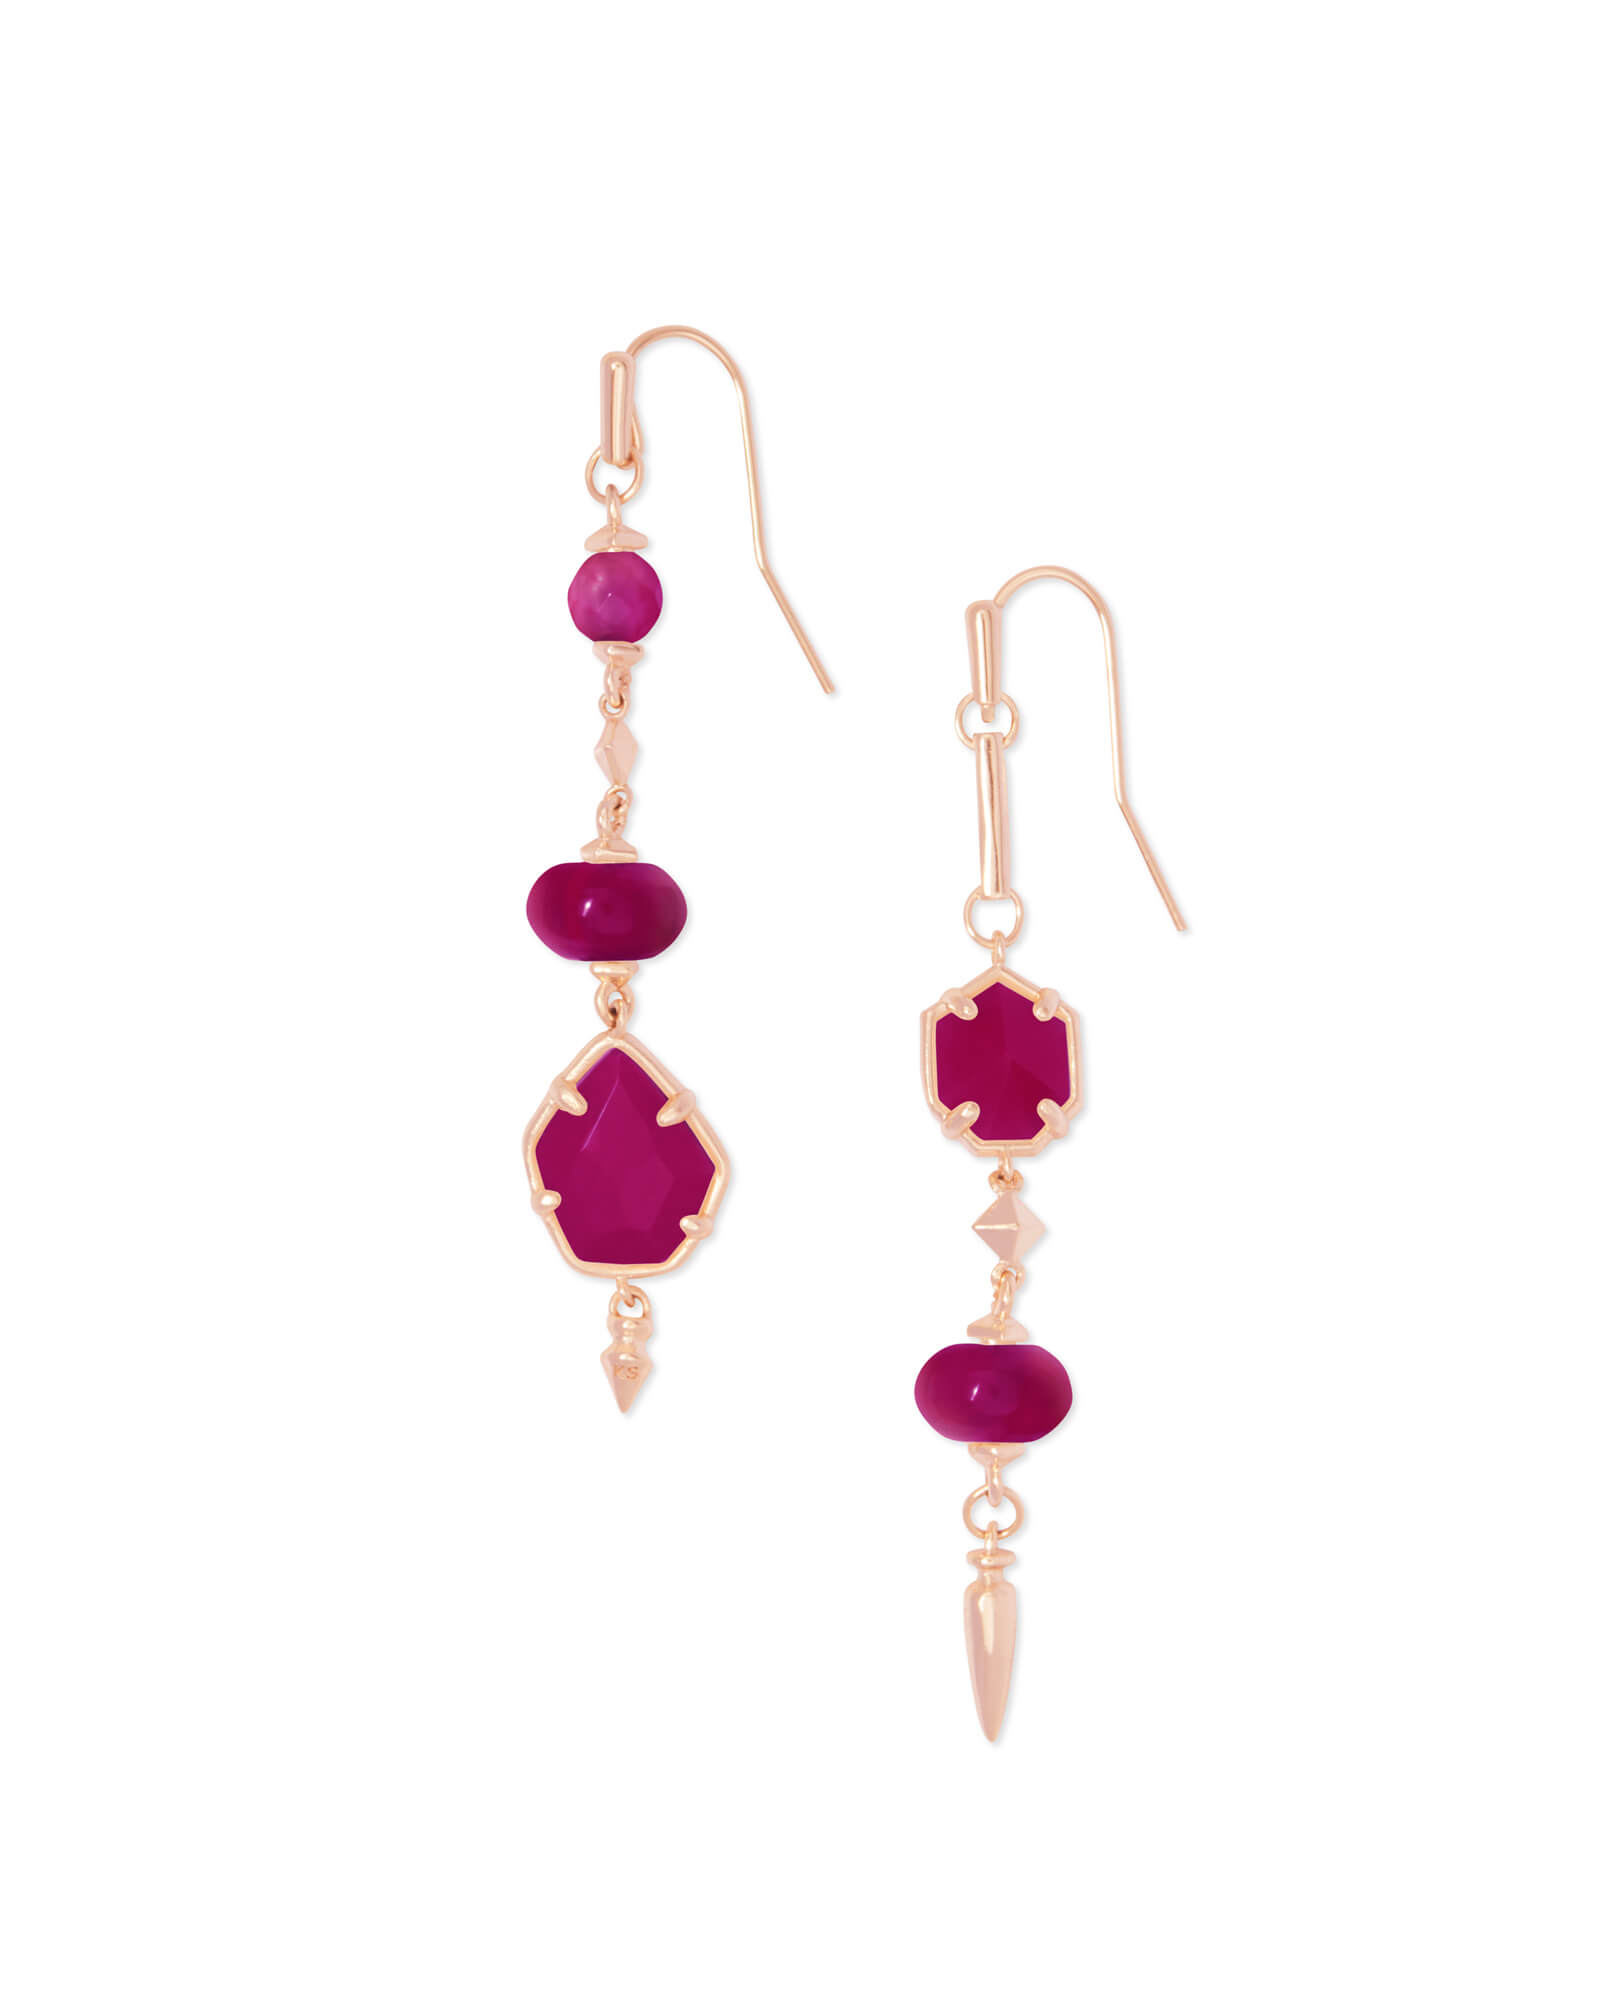 Rhys Rose Gold Statement Earrings in Maroon Jade